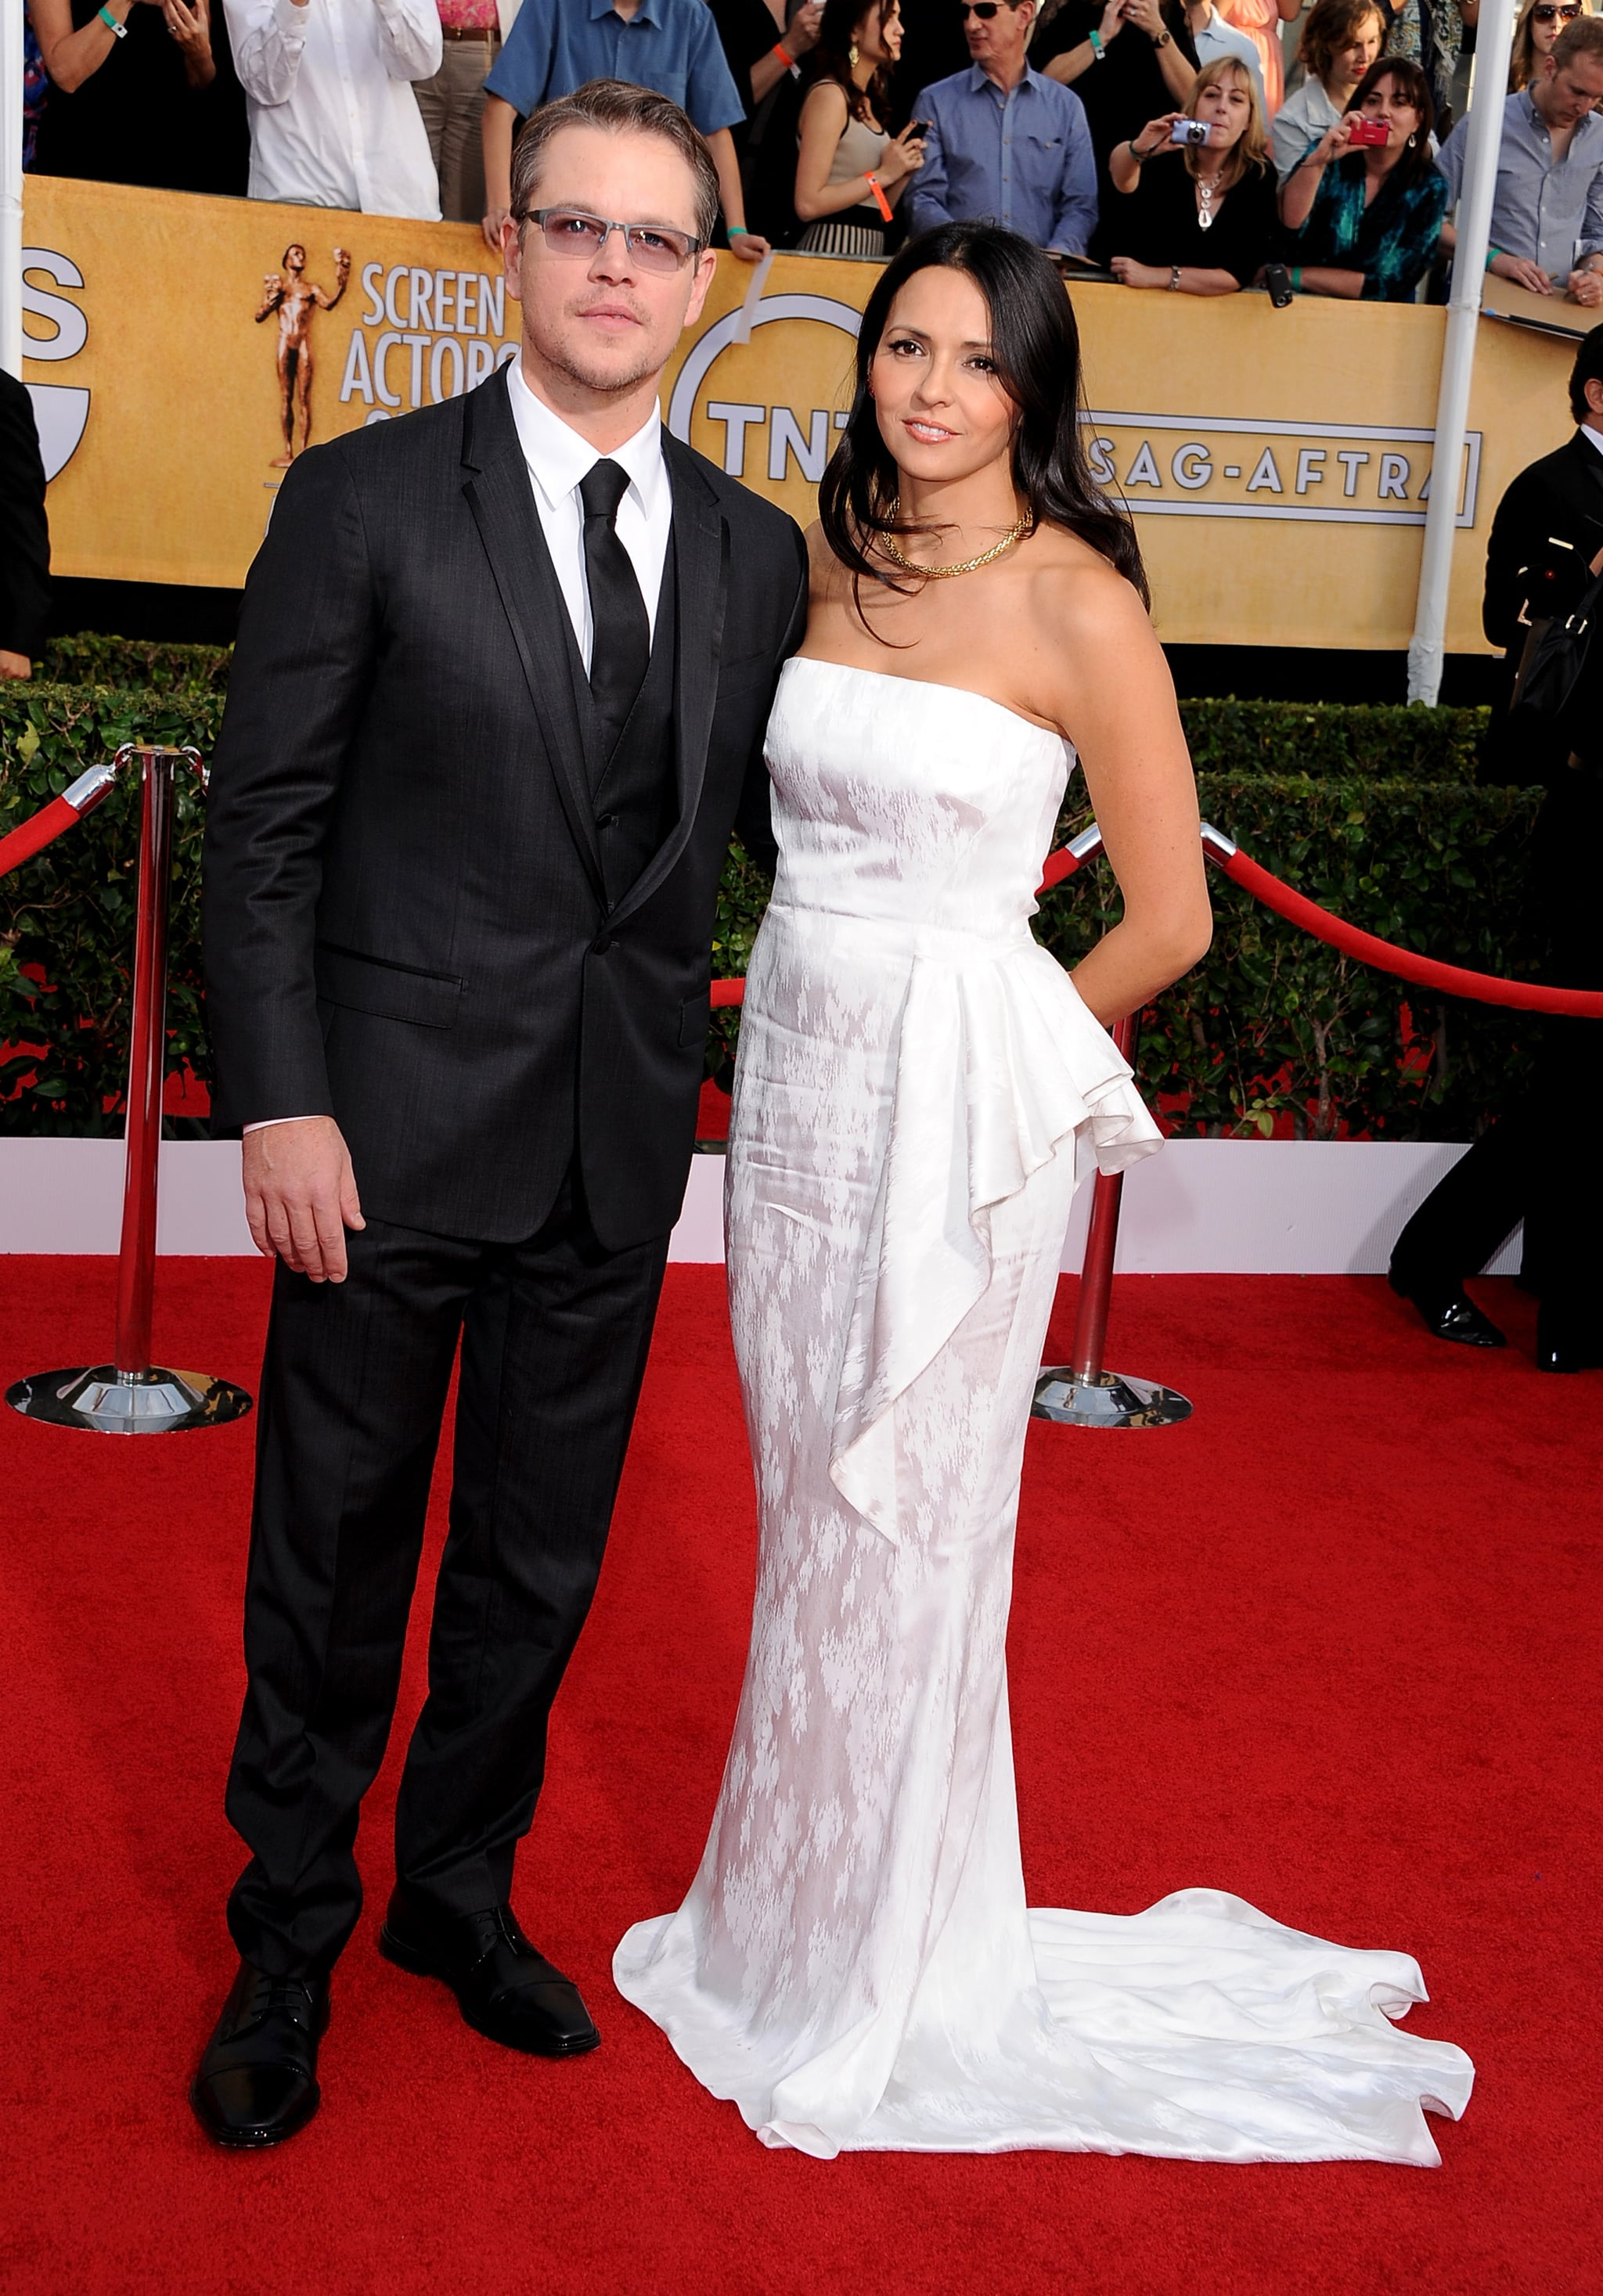 Matt Damon and his wife, Luciana, attended the SAG Awards.